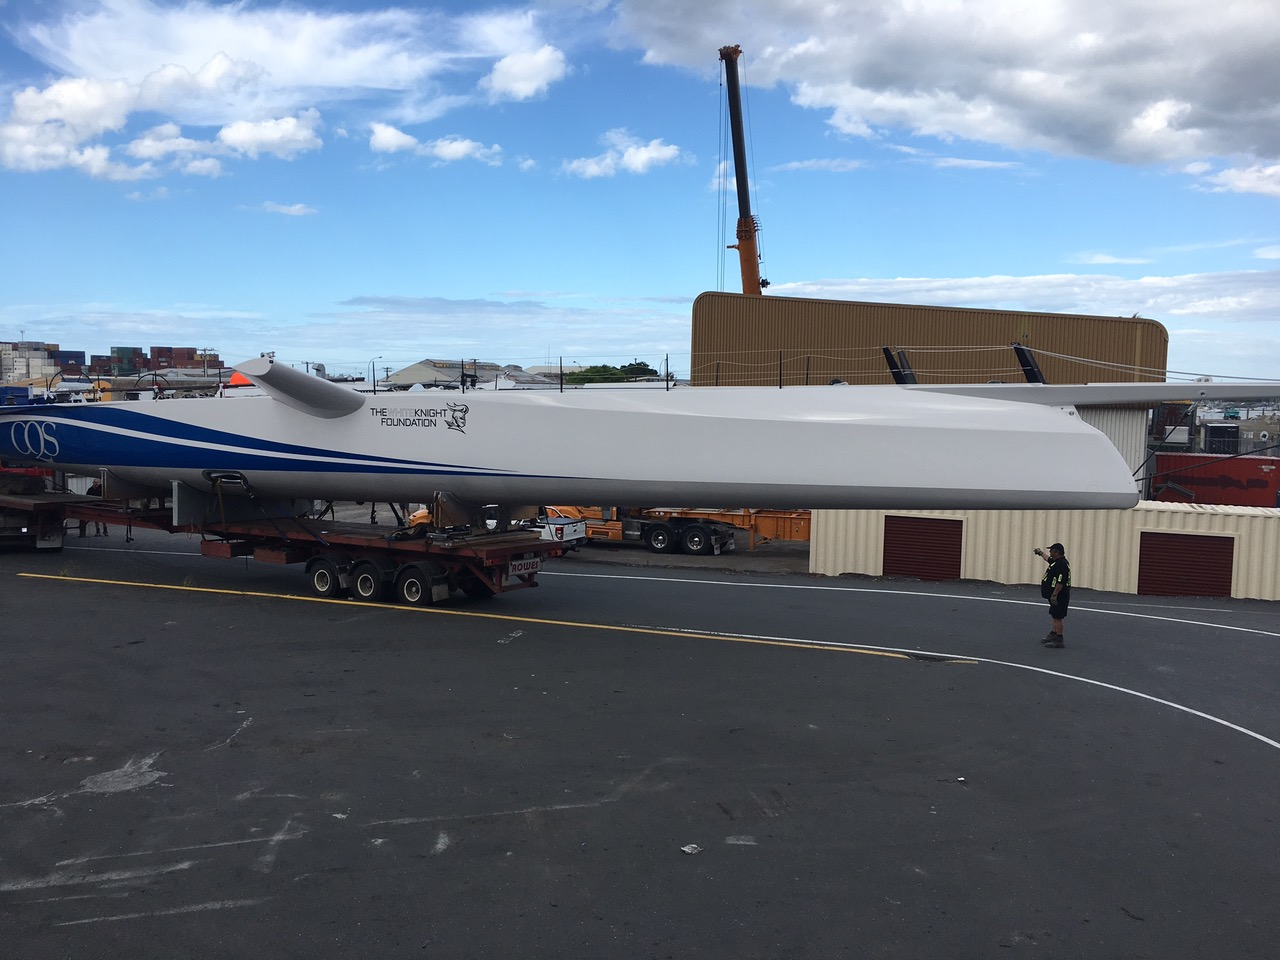 Yacht being lifted on to the truck before being transported to the docks ahead of launch.